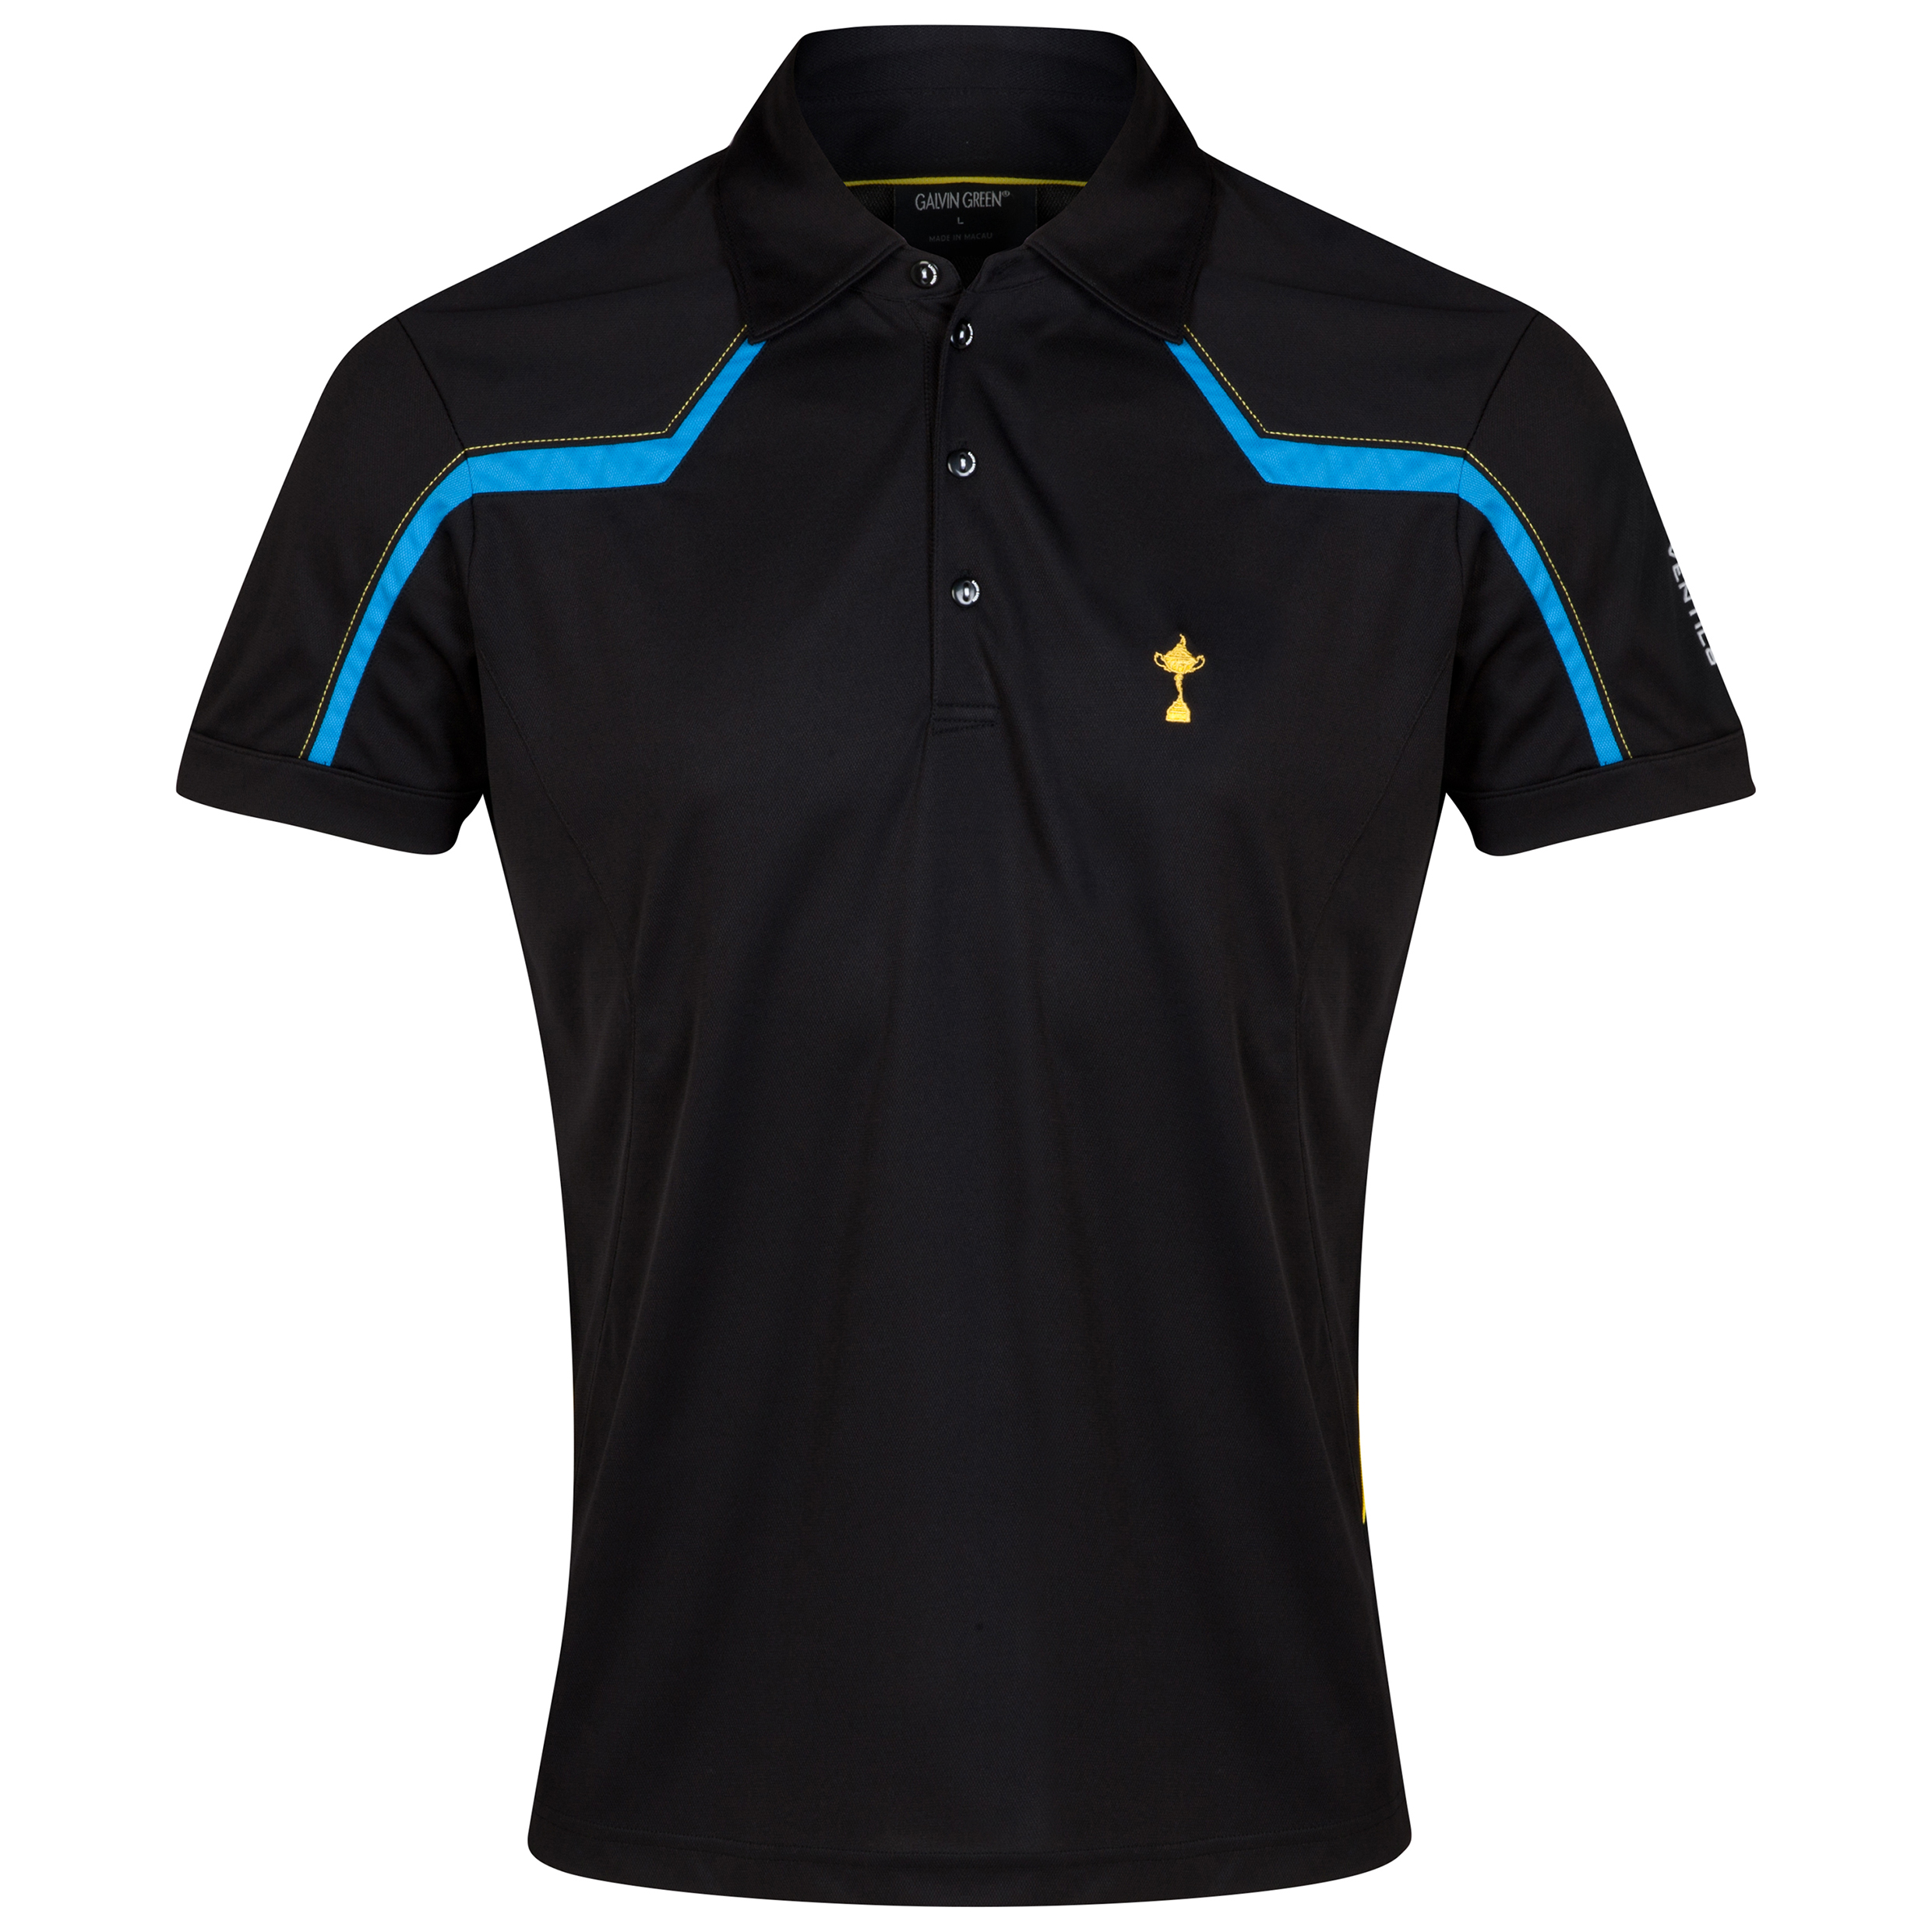 The 2014 Ryder Cup Galvin Green Limited Edition Marshall Ventil8 Polo Black